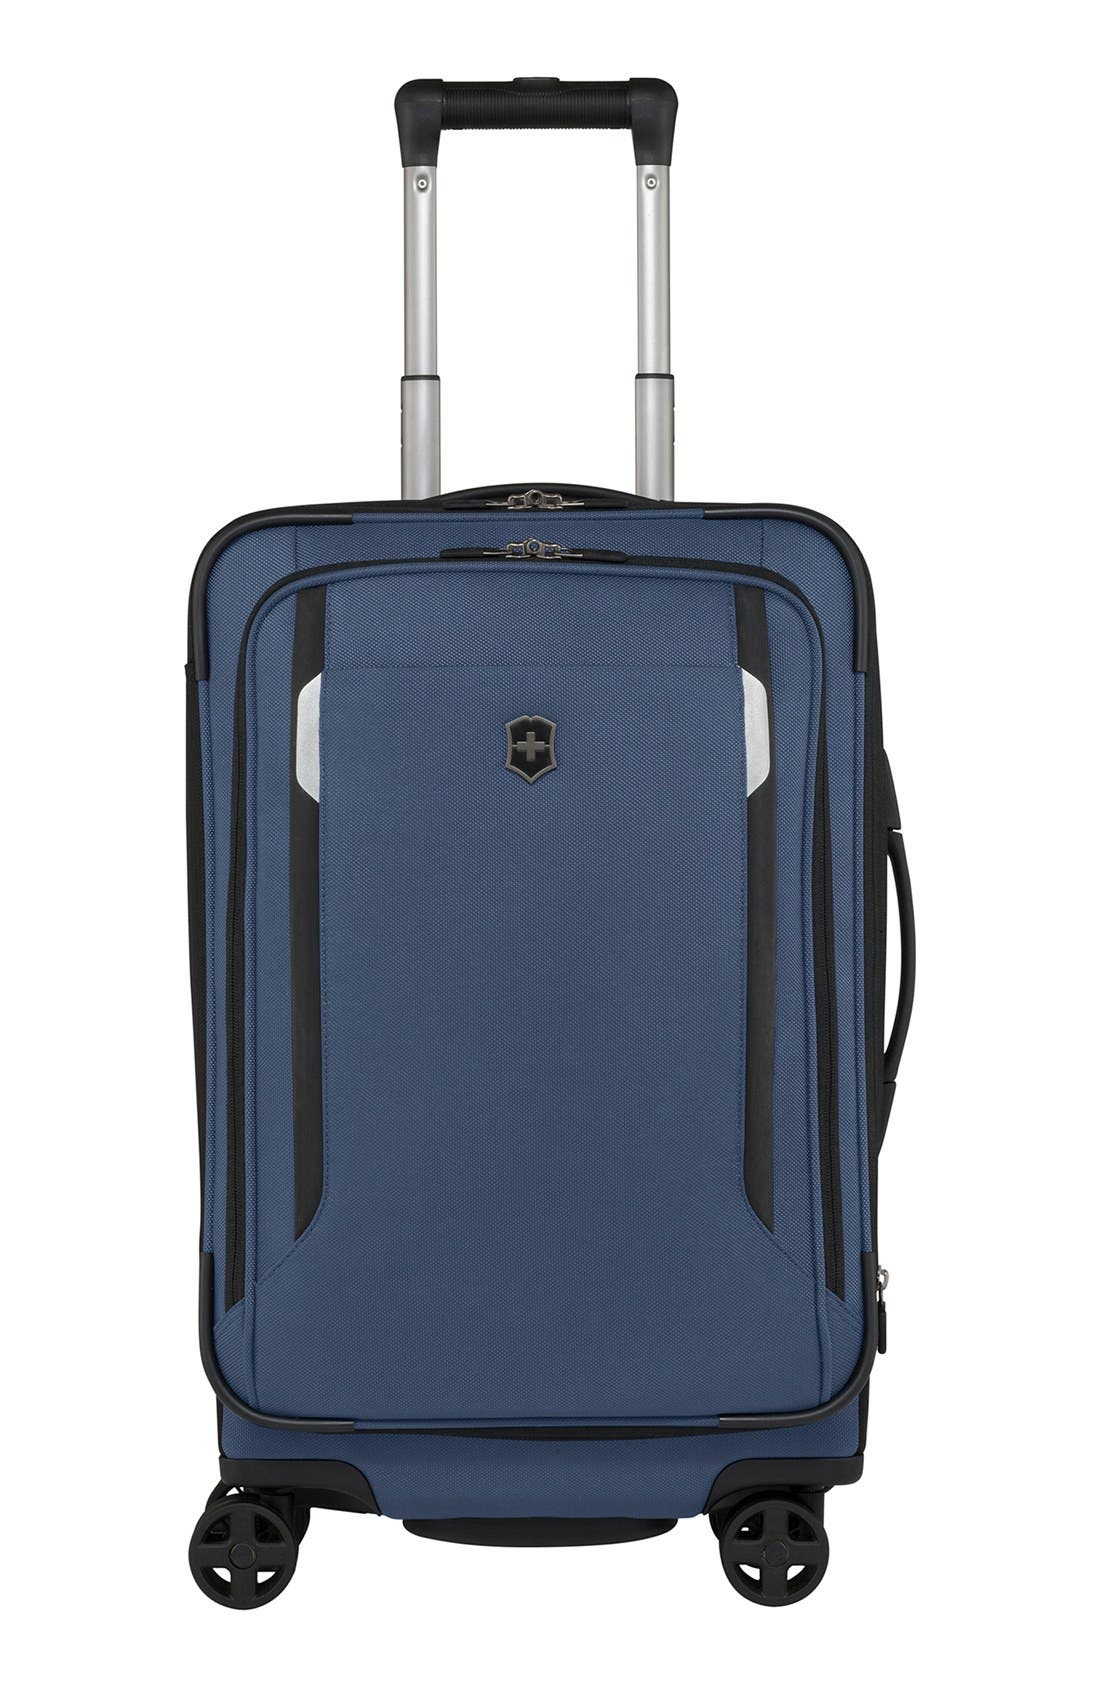 WT 5.0 Dual Caster Wheeled 22-Inch Carry-On,                         Main,                         color, 420